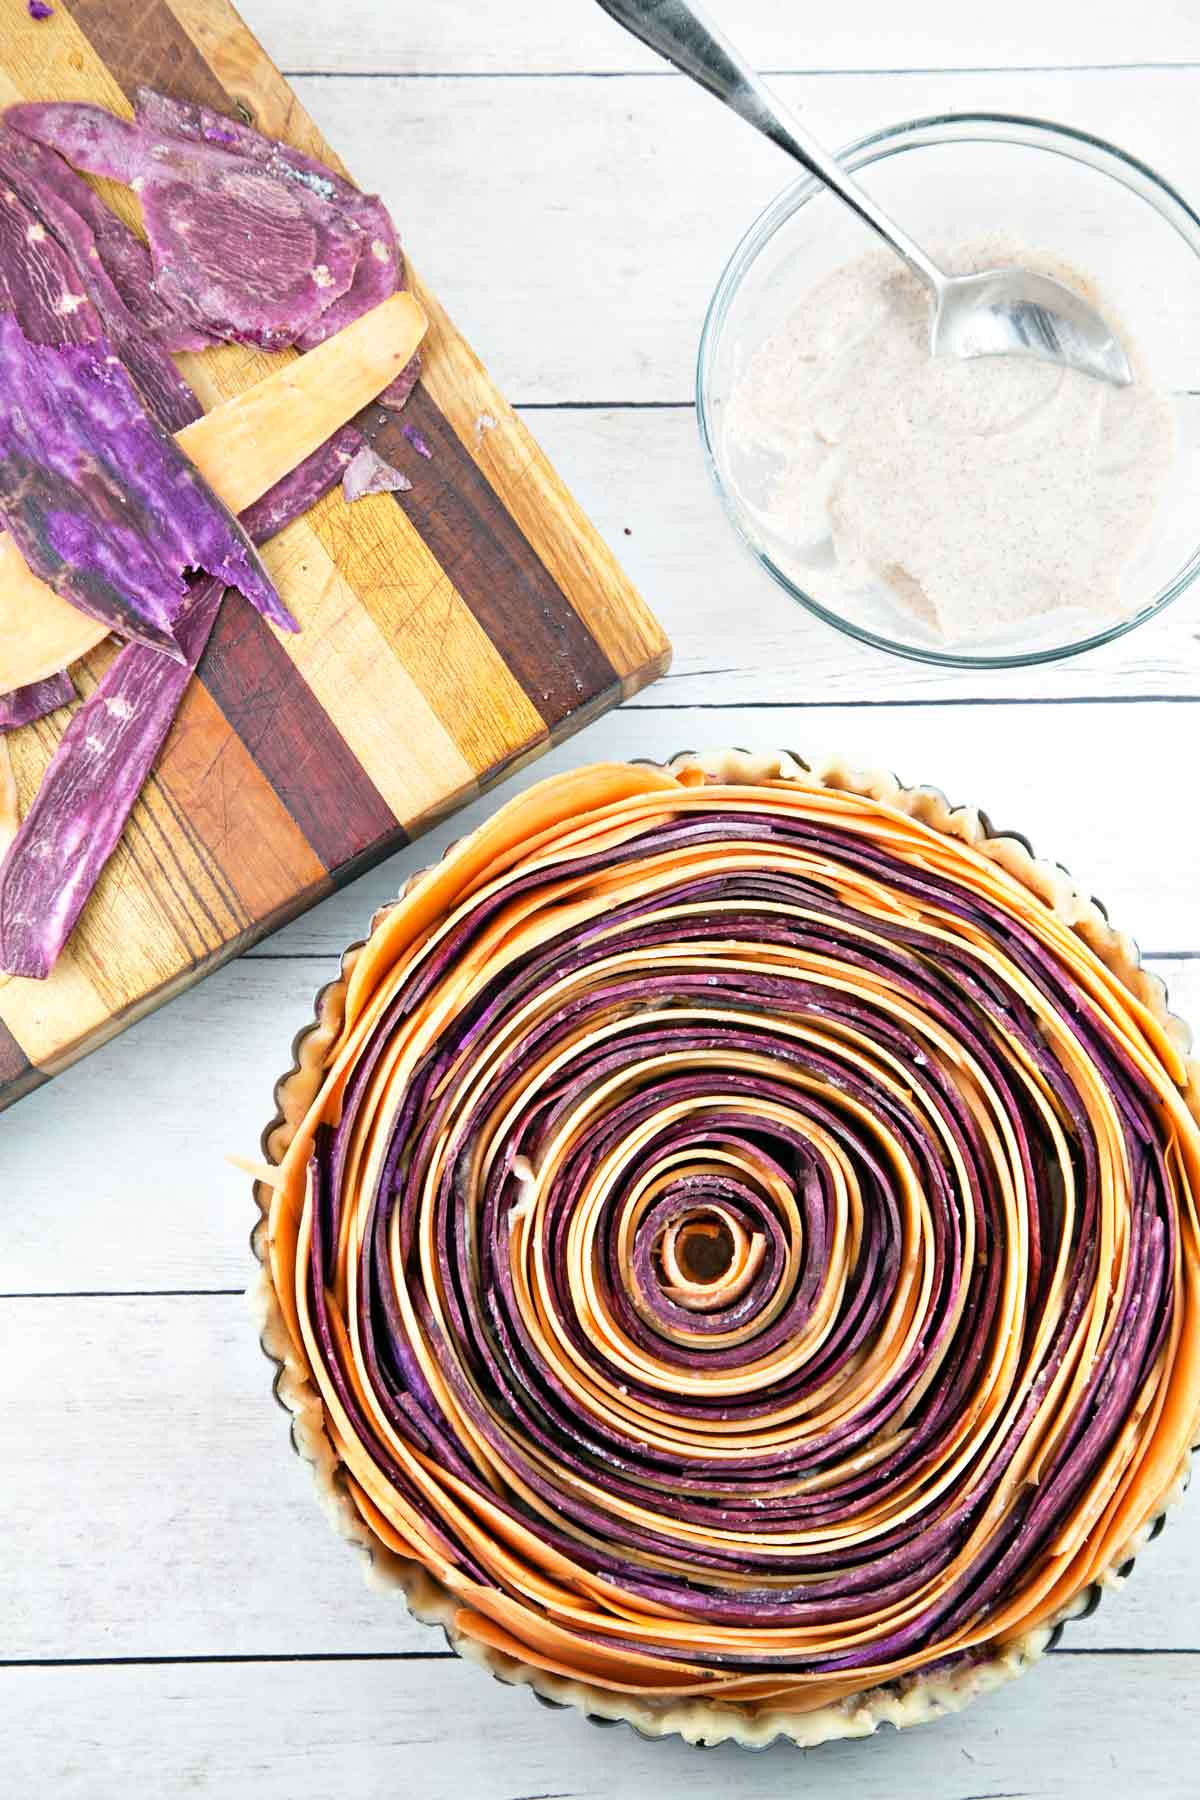 Spiral Sweet Potato Tart using different colors of sweet potato.